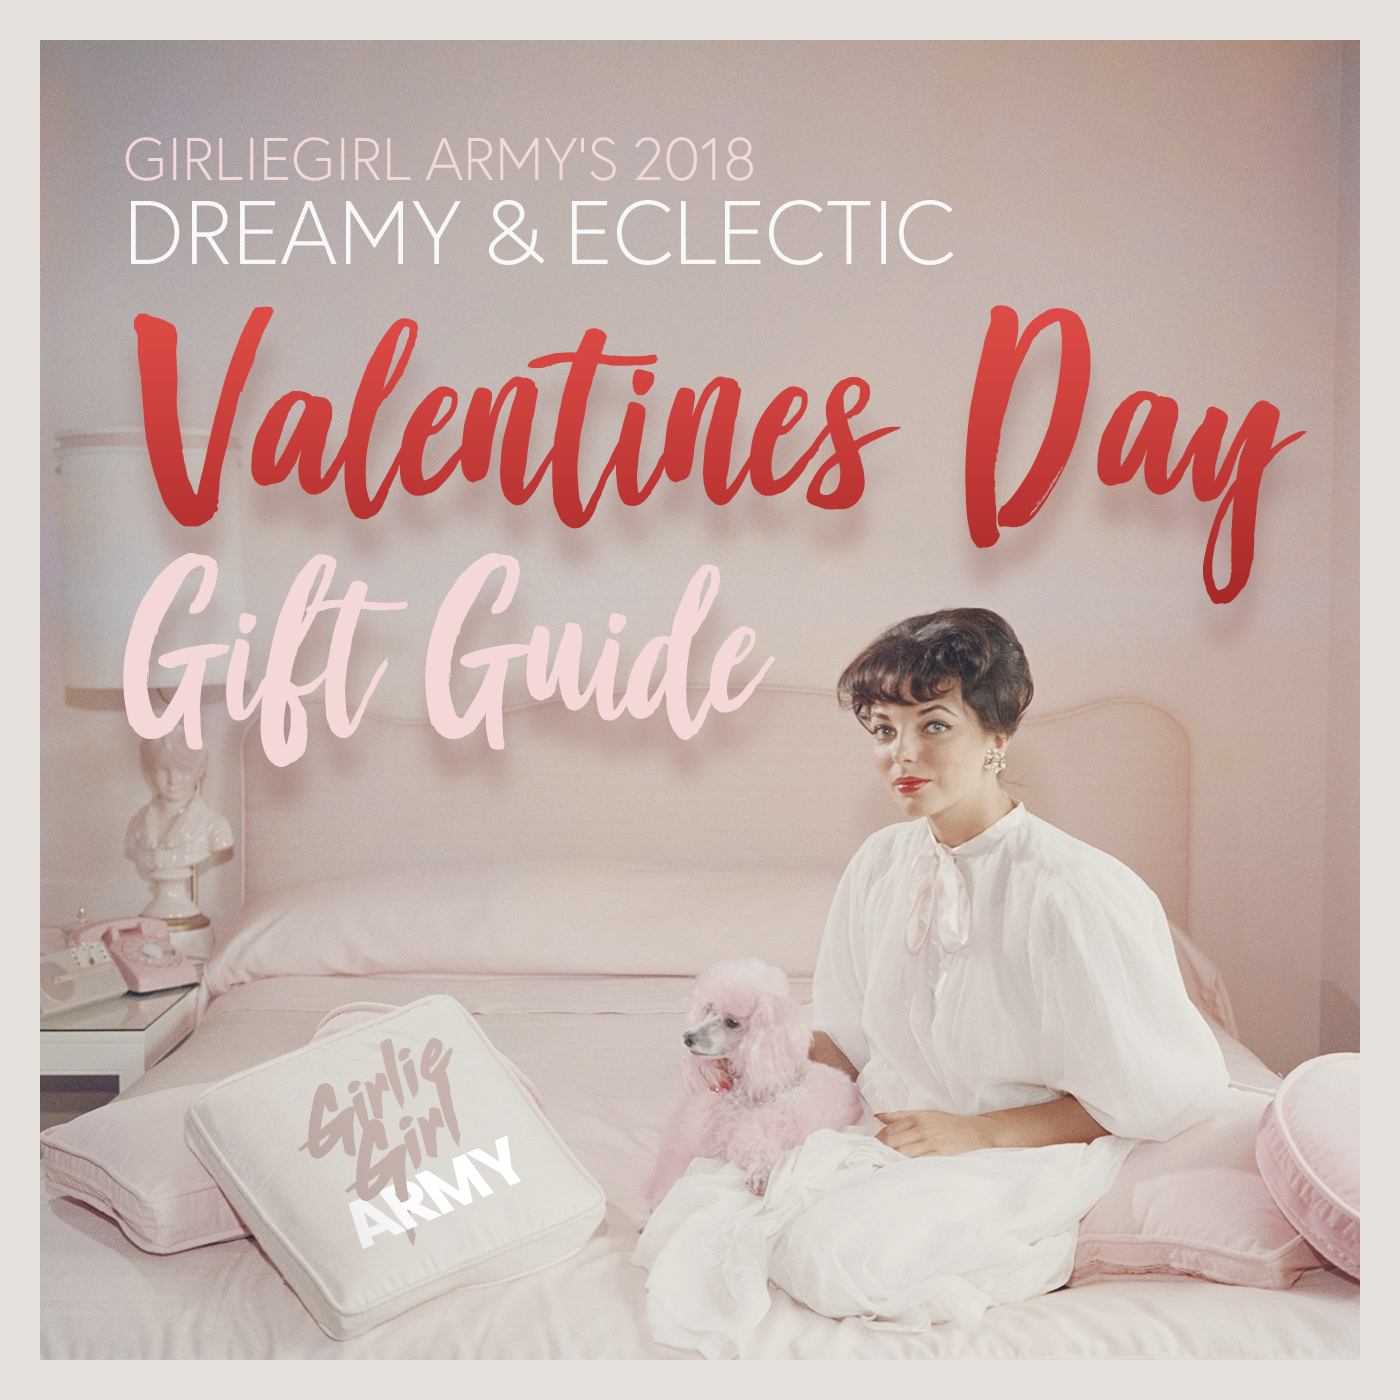 GirlieGirl Army's 2018 Dreamy & Eclectic Valentine's Day Gift Guide